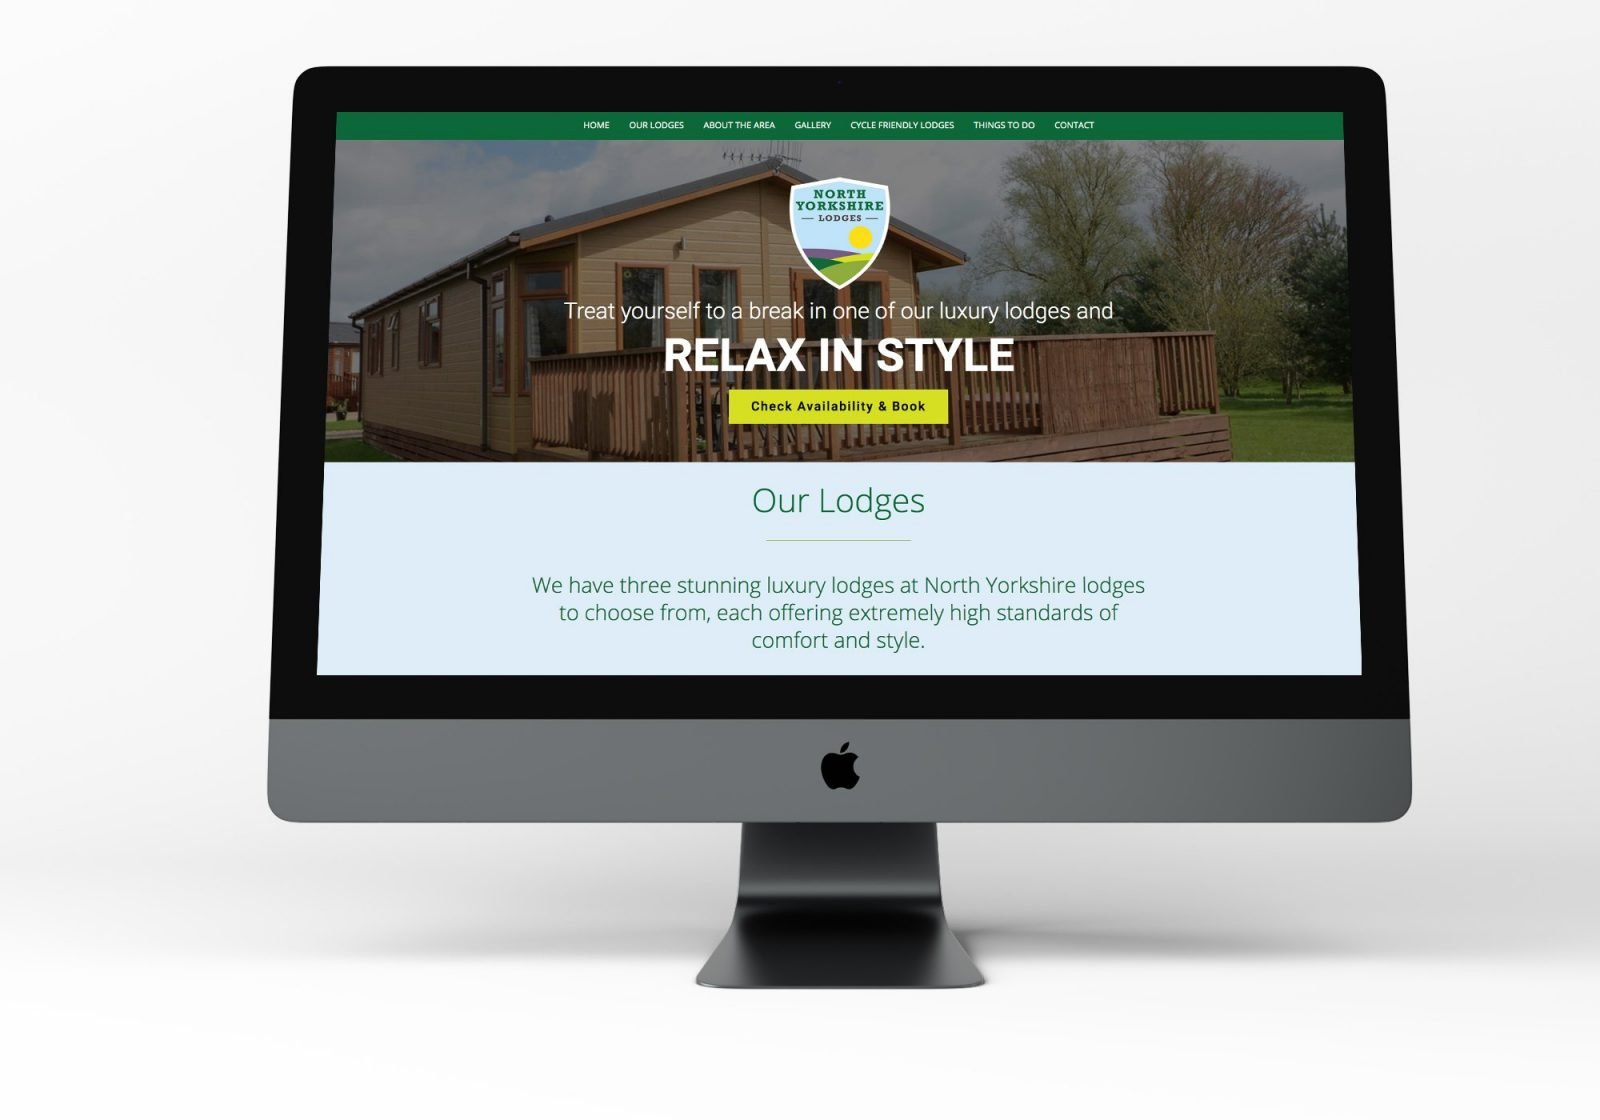 A computer showing the home page for North Yorkshire Lodges website